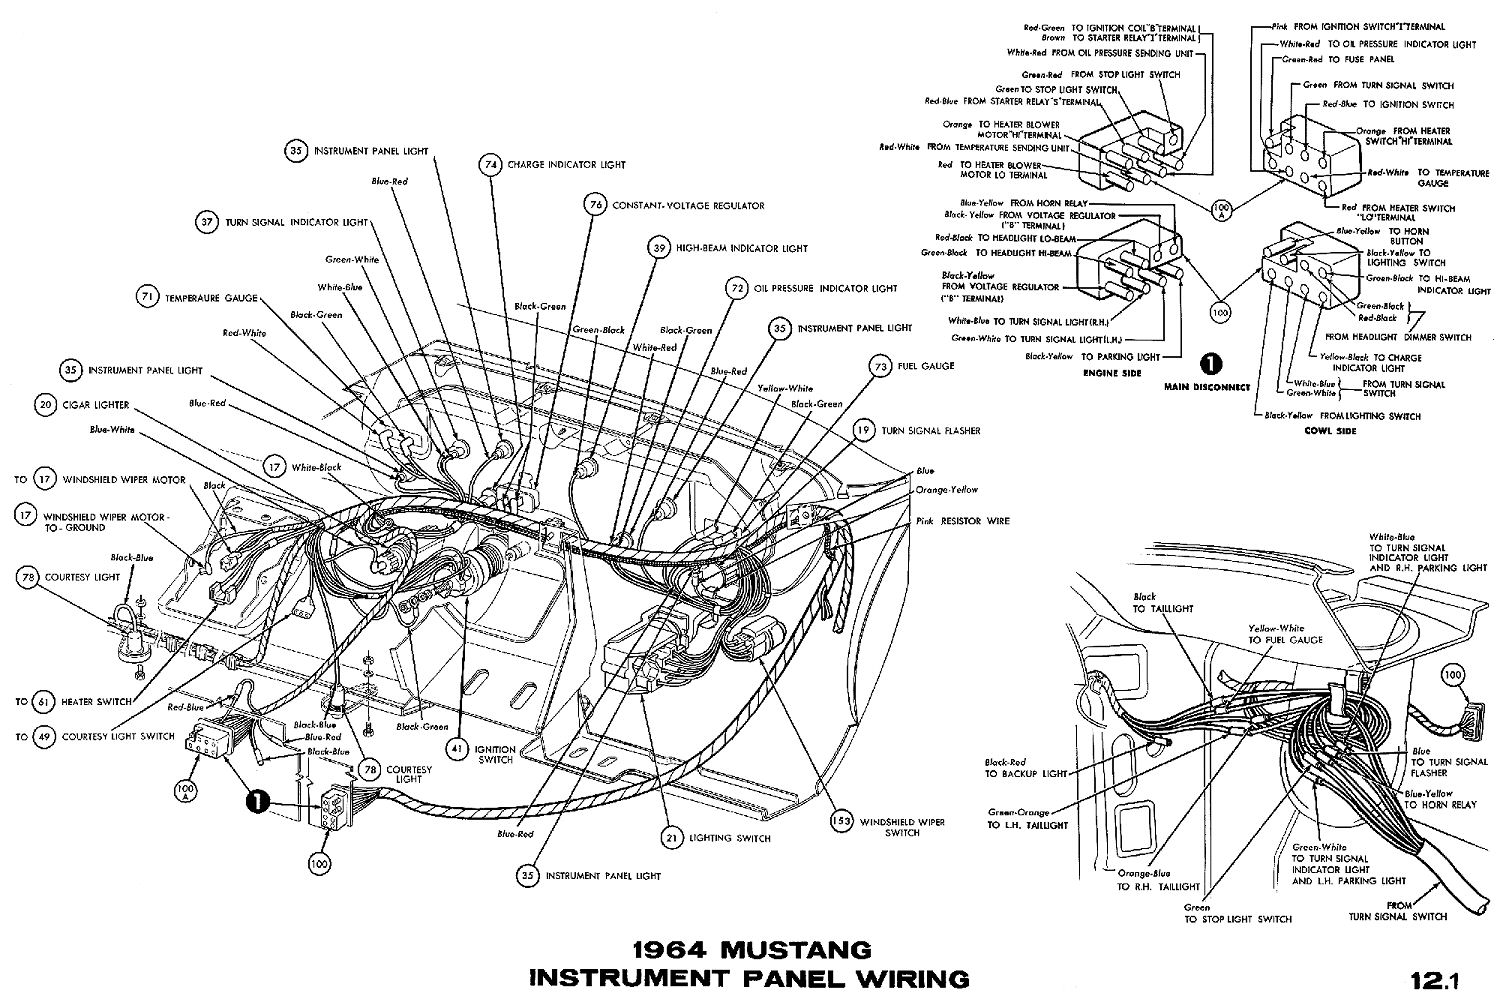 1964b 1964 mustang wiring diagrams average joe restoration Chevy Wiring Harness Diagram at edmiracle.co